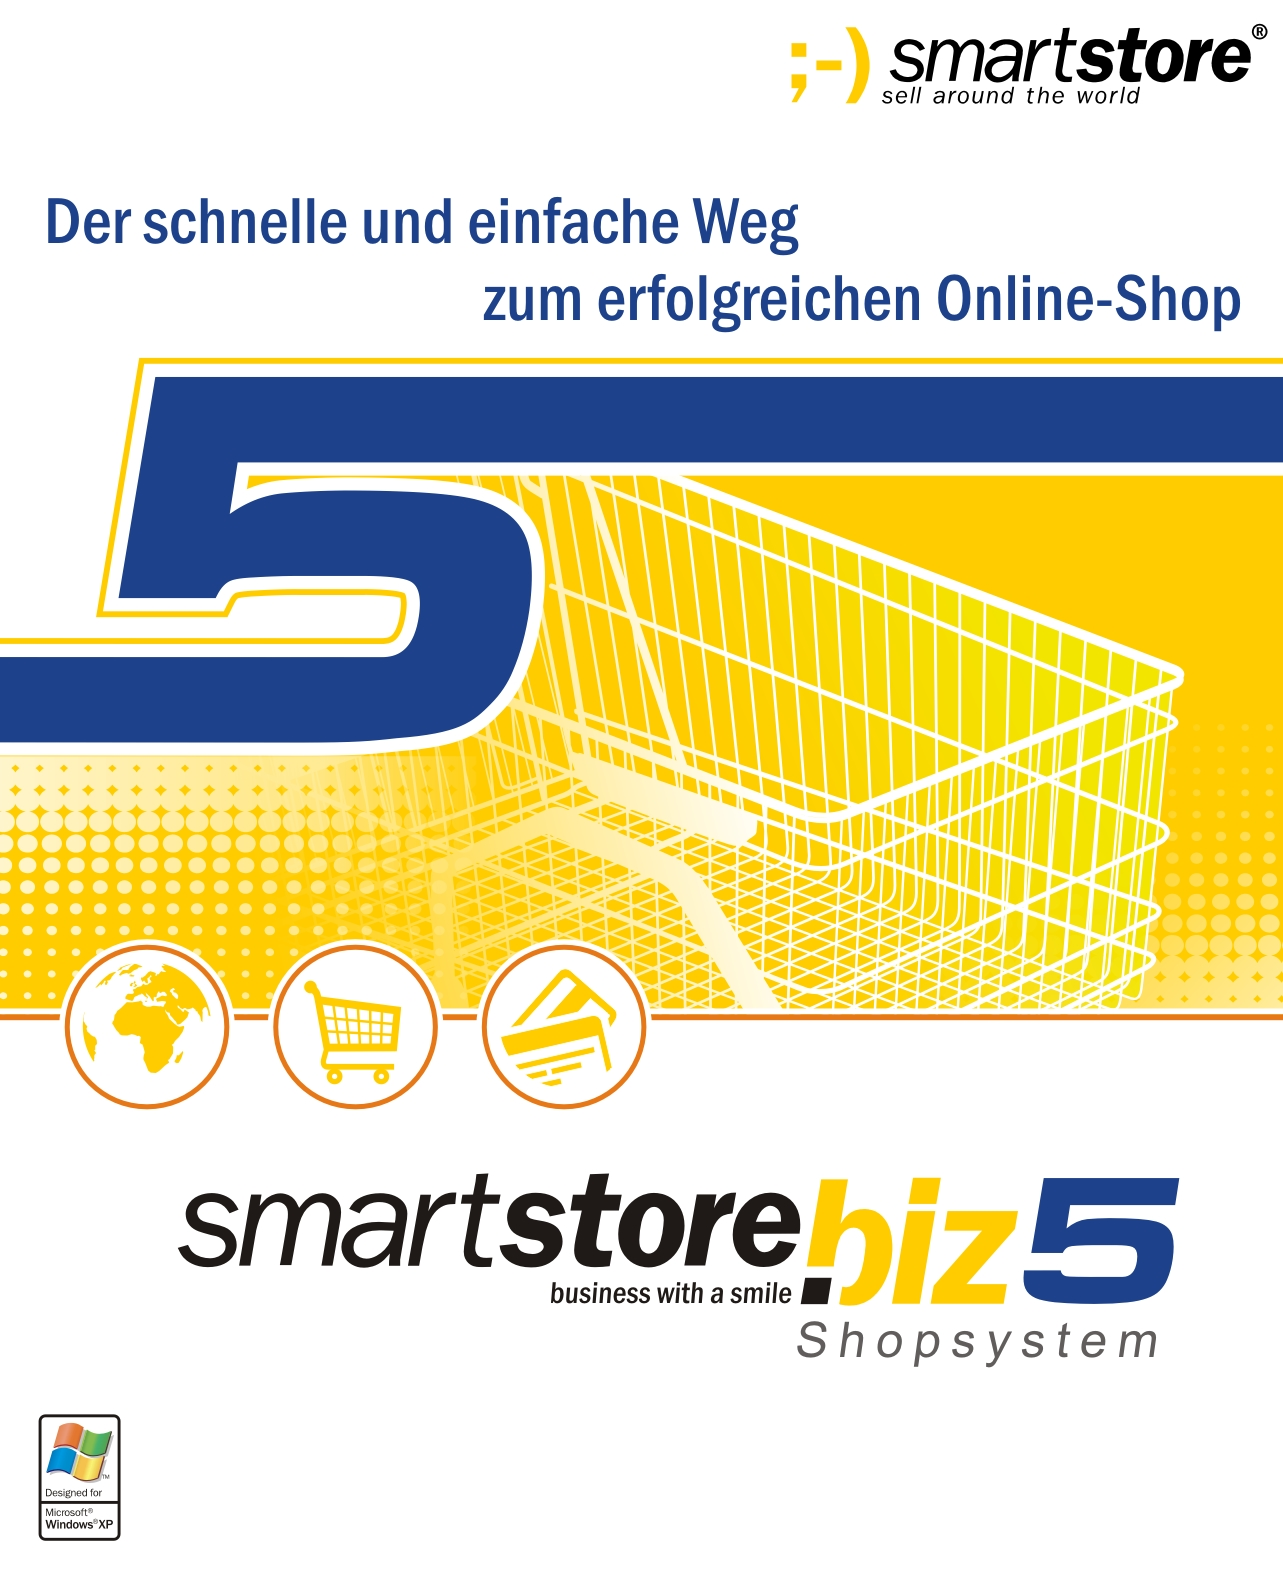 Smartstore.biz 5 is published